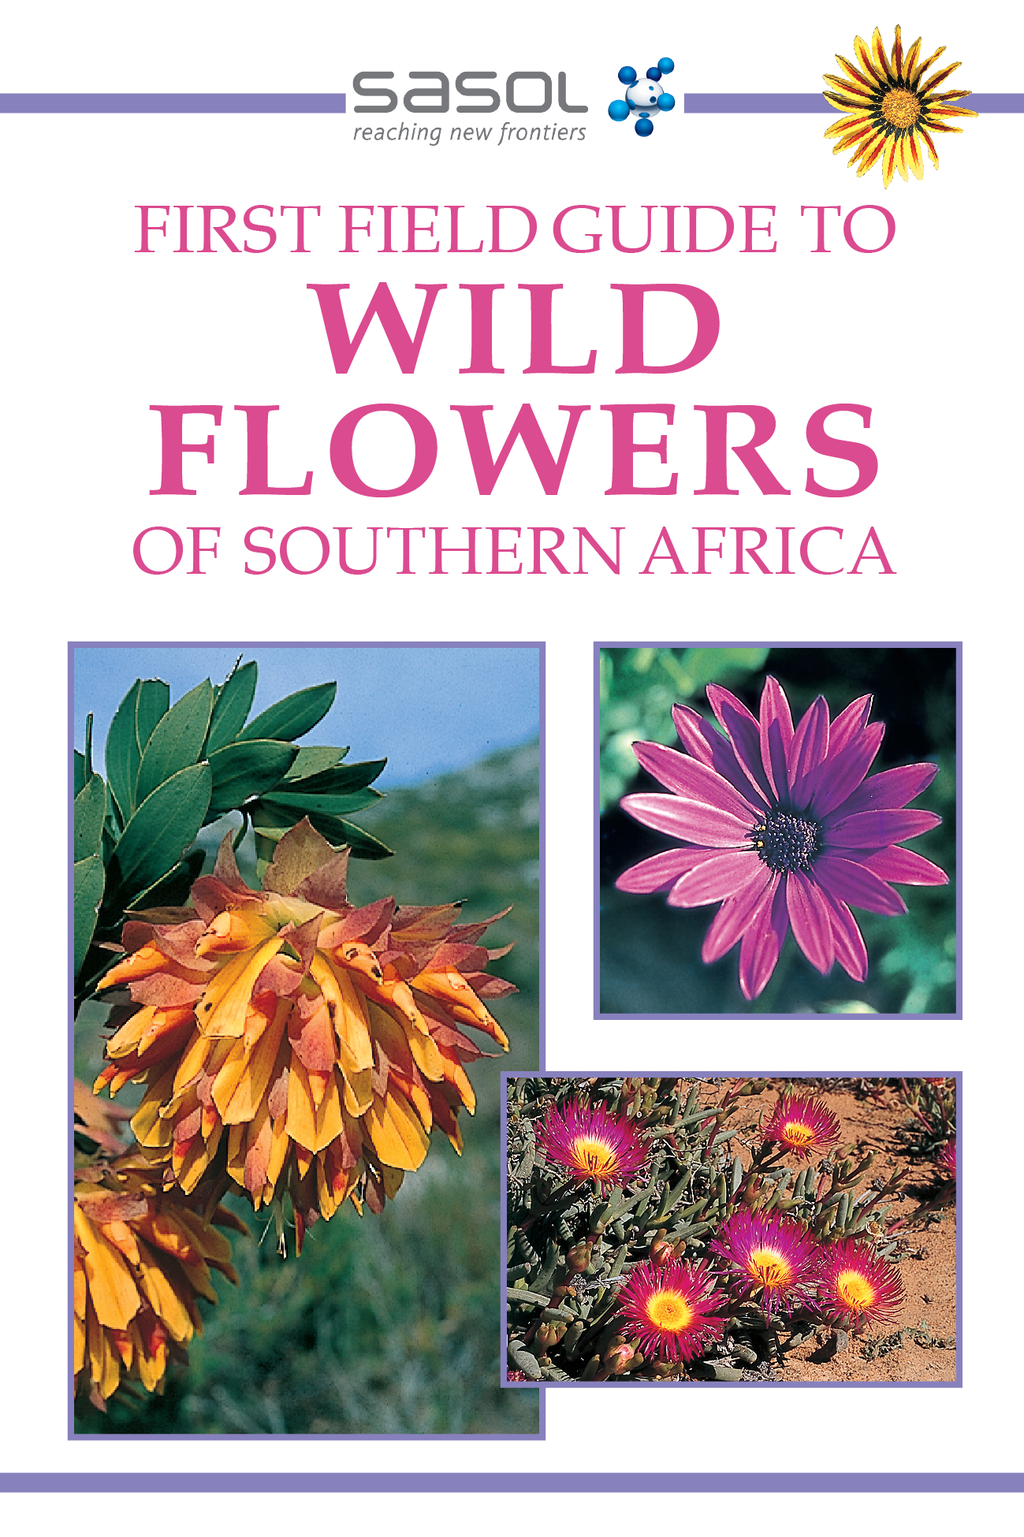 Sasol First Field Guide to Wild Flowers of Southern Africa